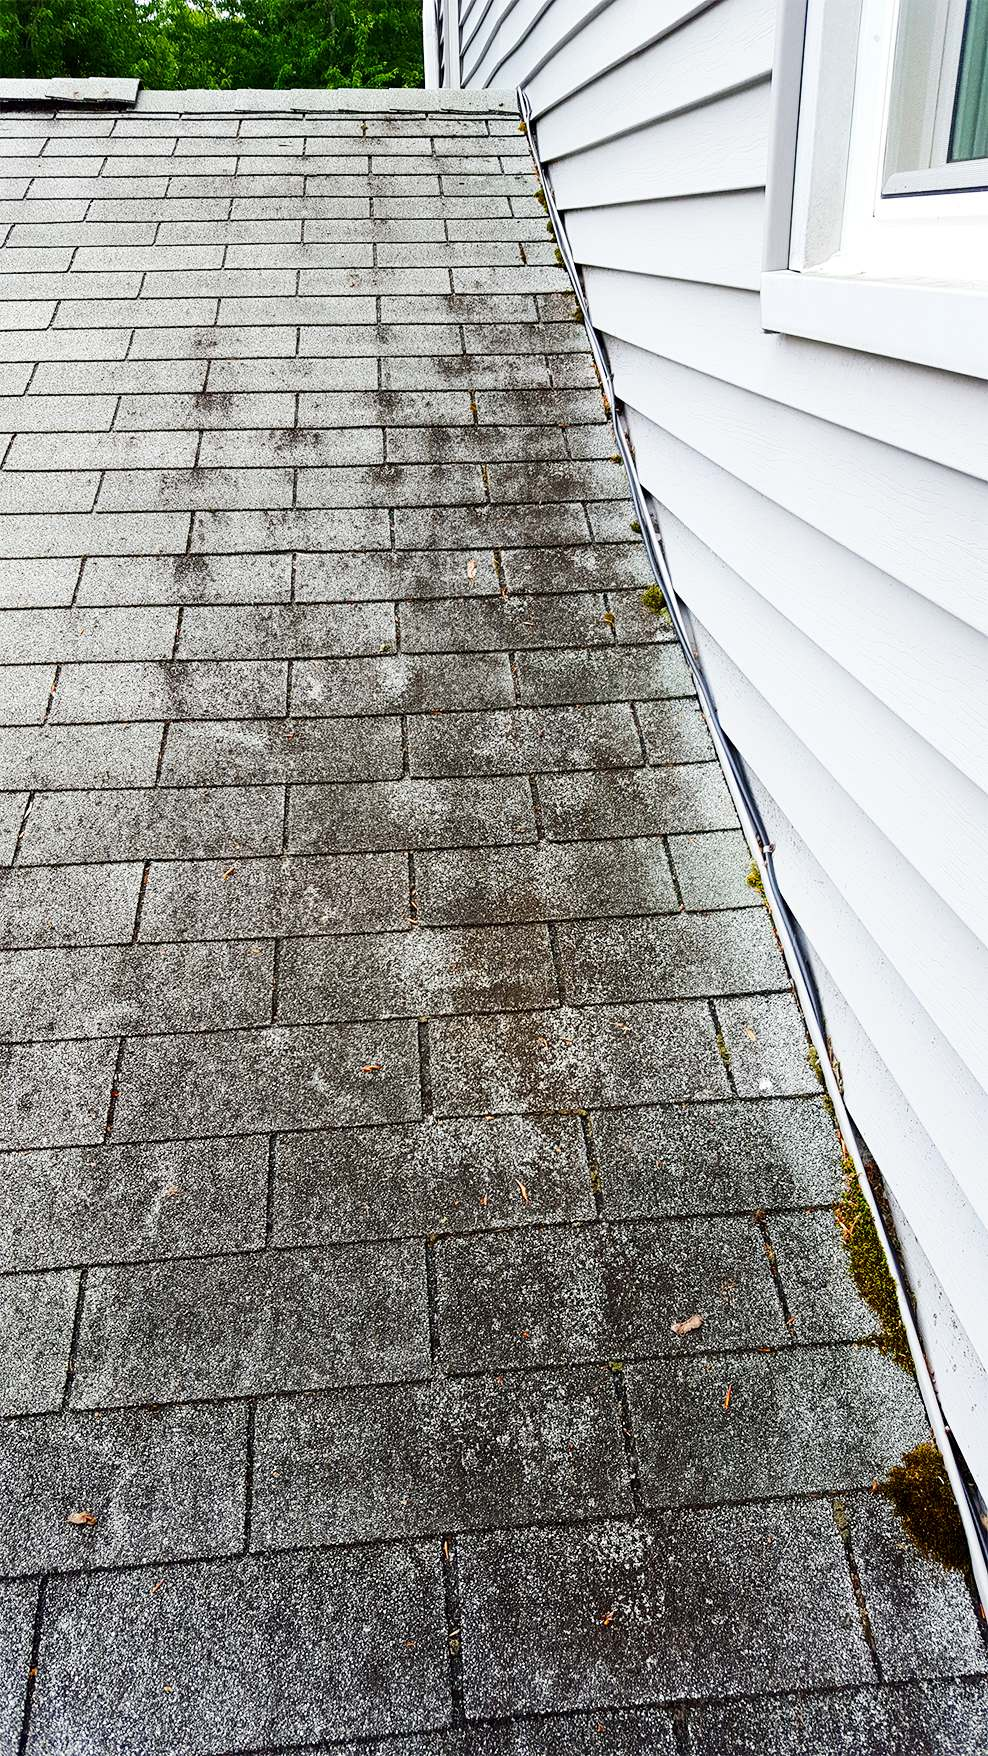 20150609_161822-black-mold-on-roof-large.jpg